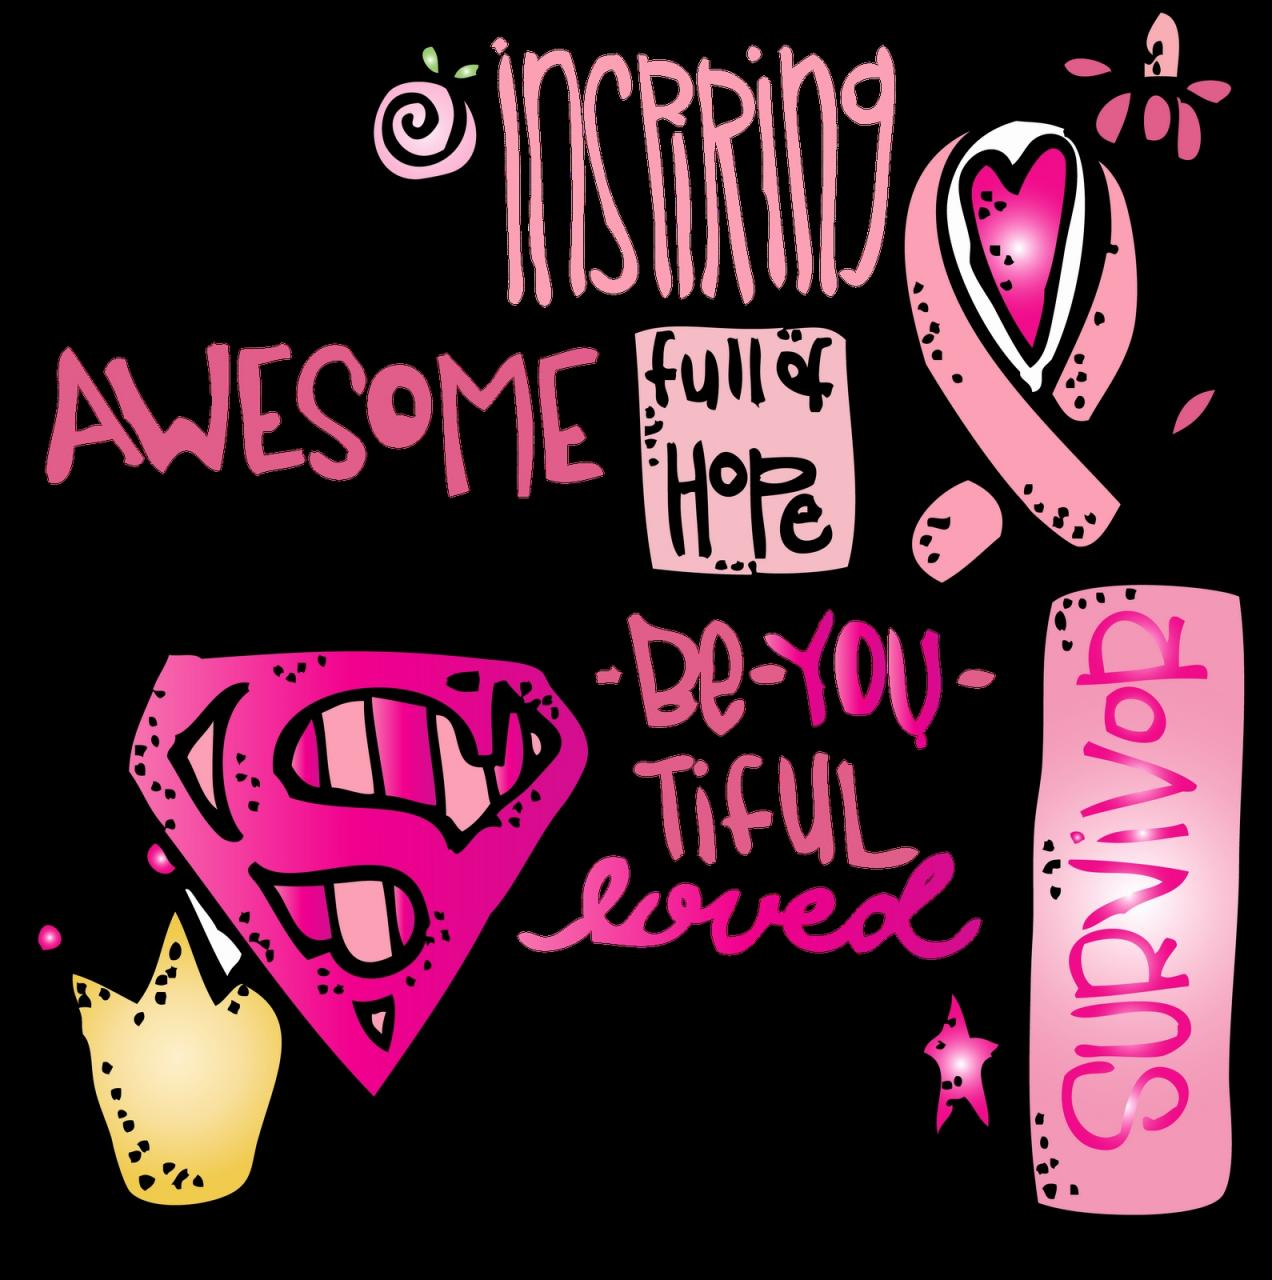 Beat Cancer Quotes Awesome To All The Friends Patients And All The Other Women Who Had